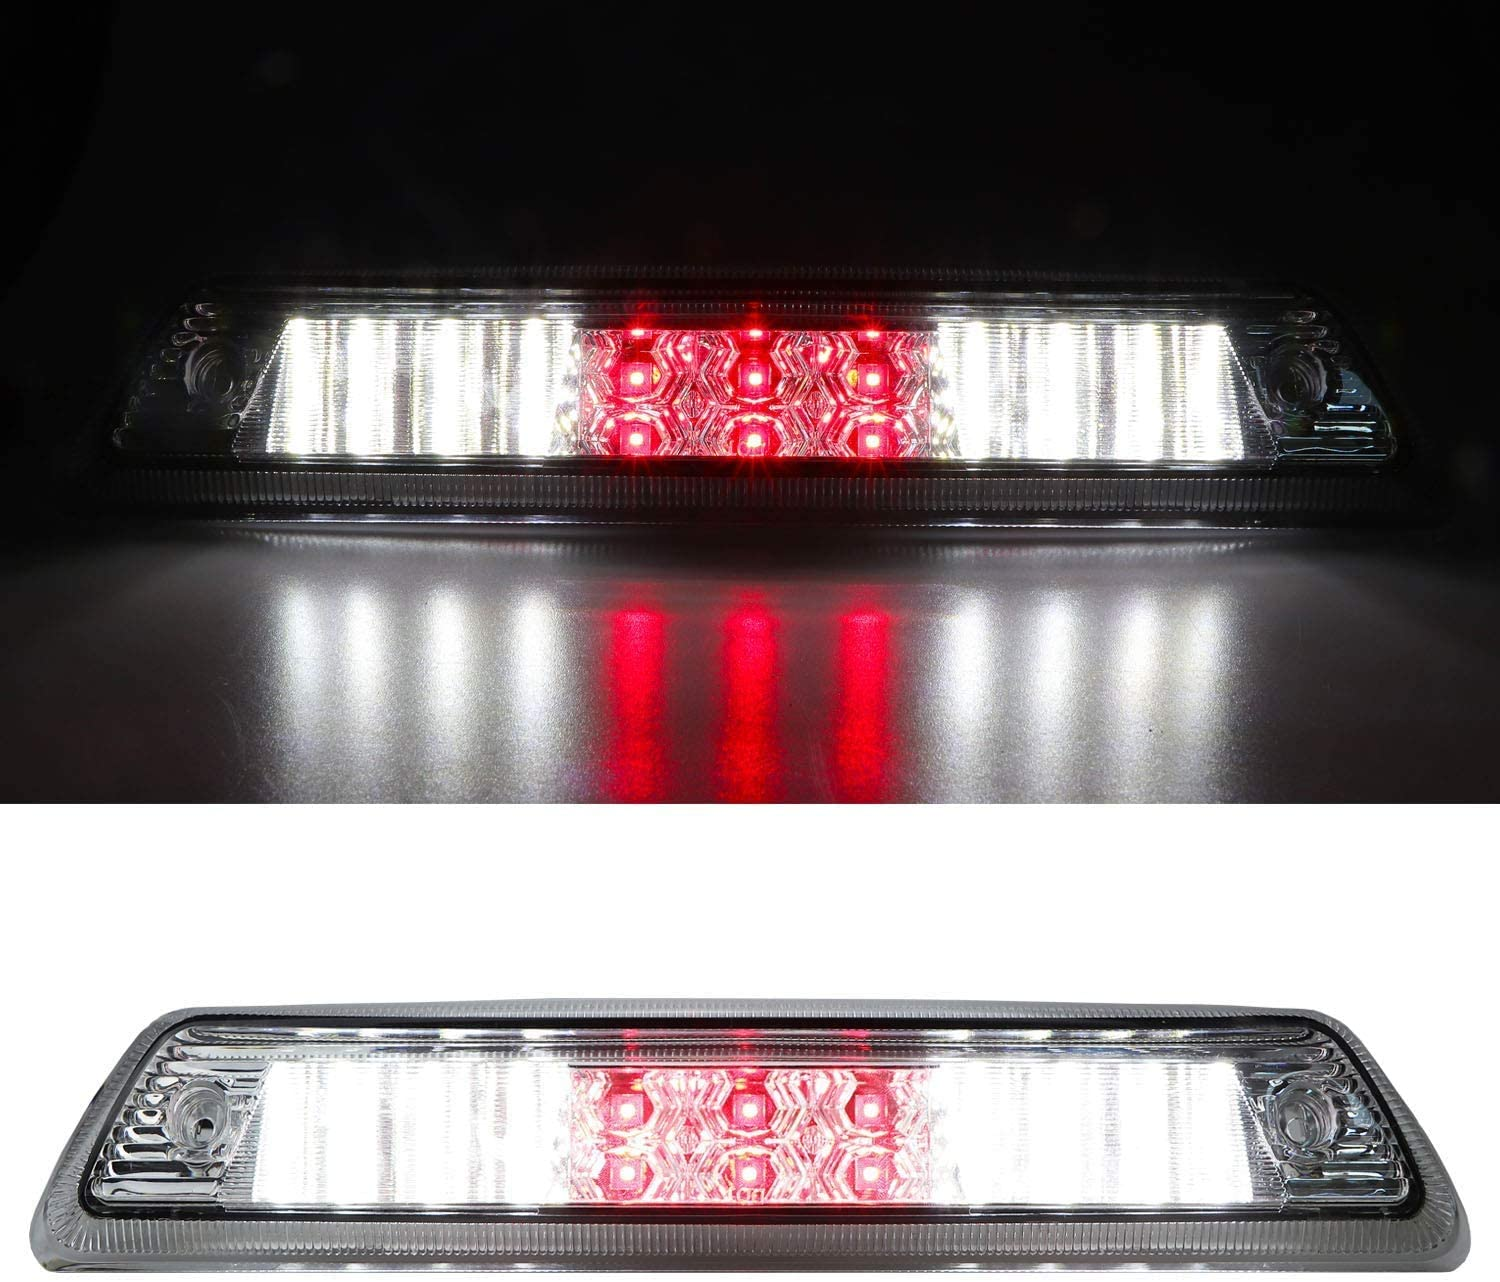 High Mount 3rd Stop Light Assemblies For 2009-2014 Ford F150 Third Center Cargo Reverse Rear LED Brake Light Bar Taillight Two Rows Smoke